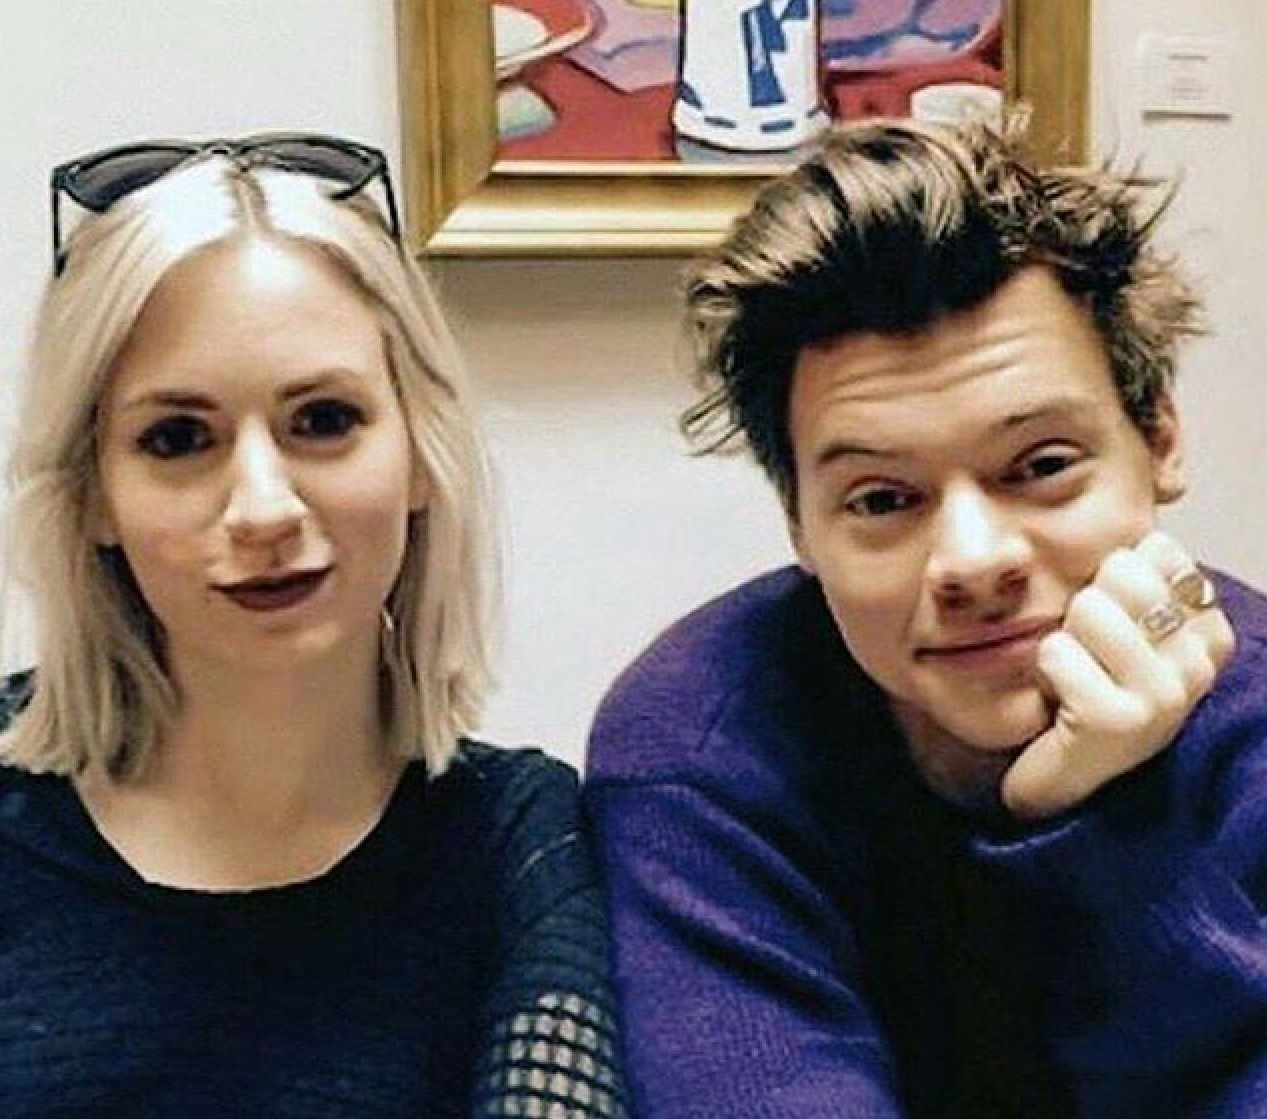 Harry Styles And His Sister Gemma 1d Harry Styles Harry Styles